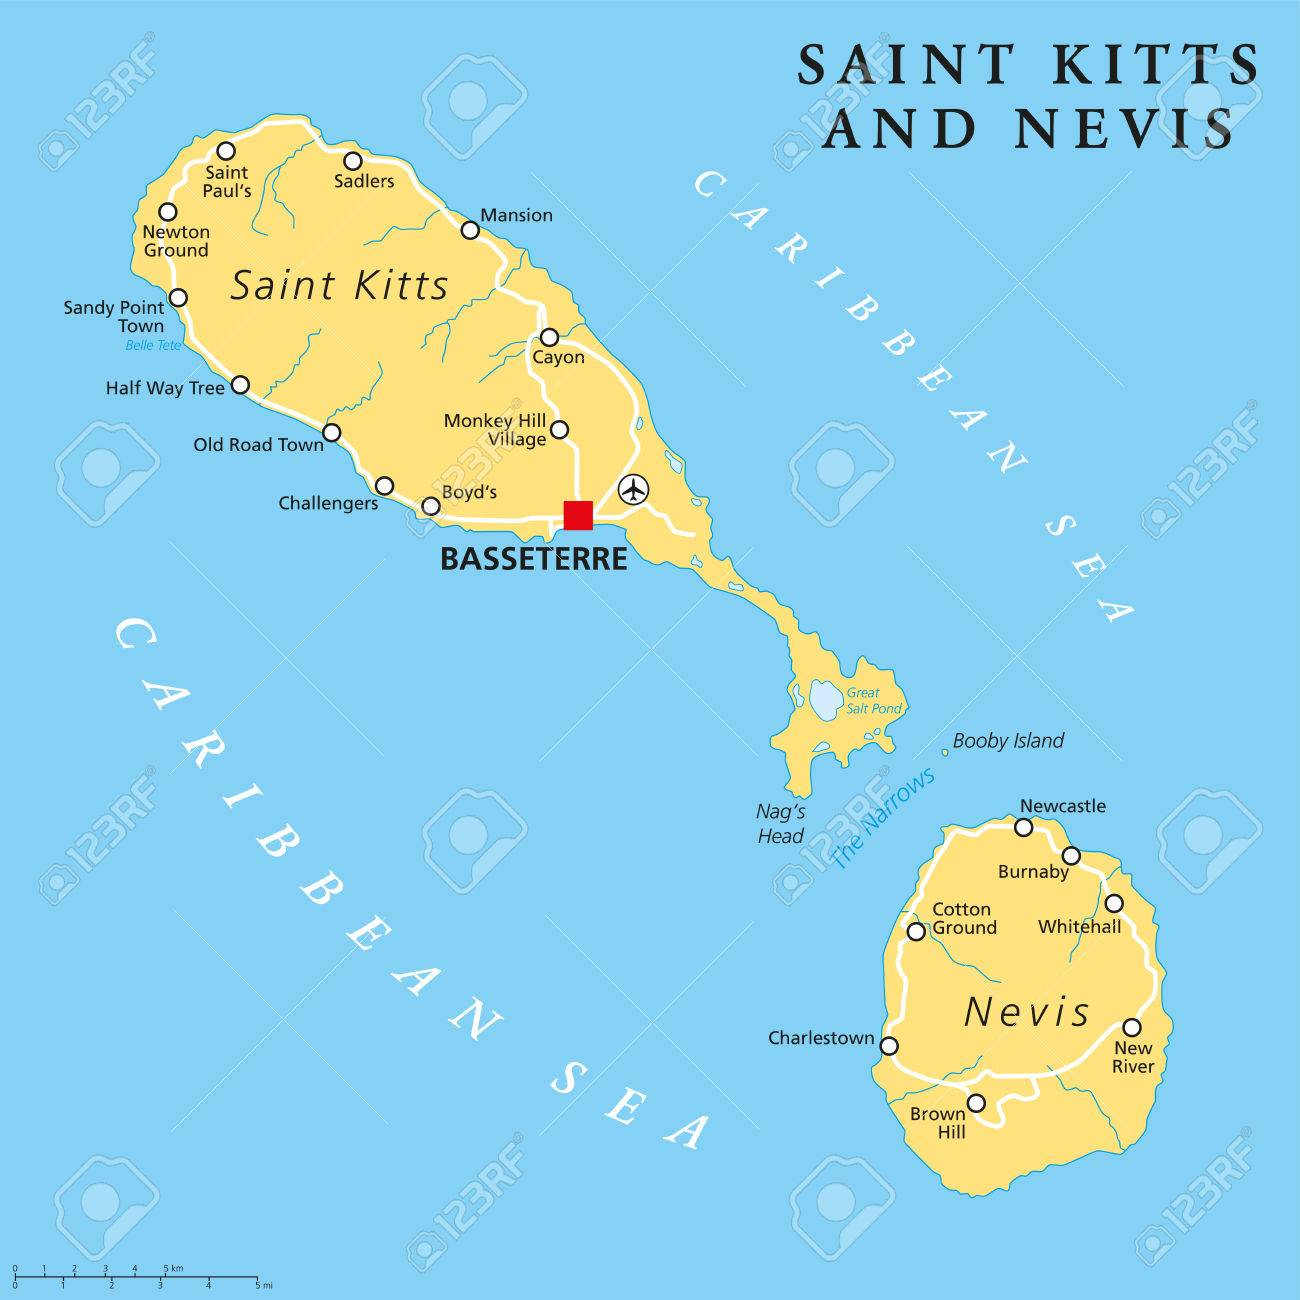 Saint Kitts And Nevis Political Map With Capital Basseterre Is - Saint kitts and nevis map